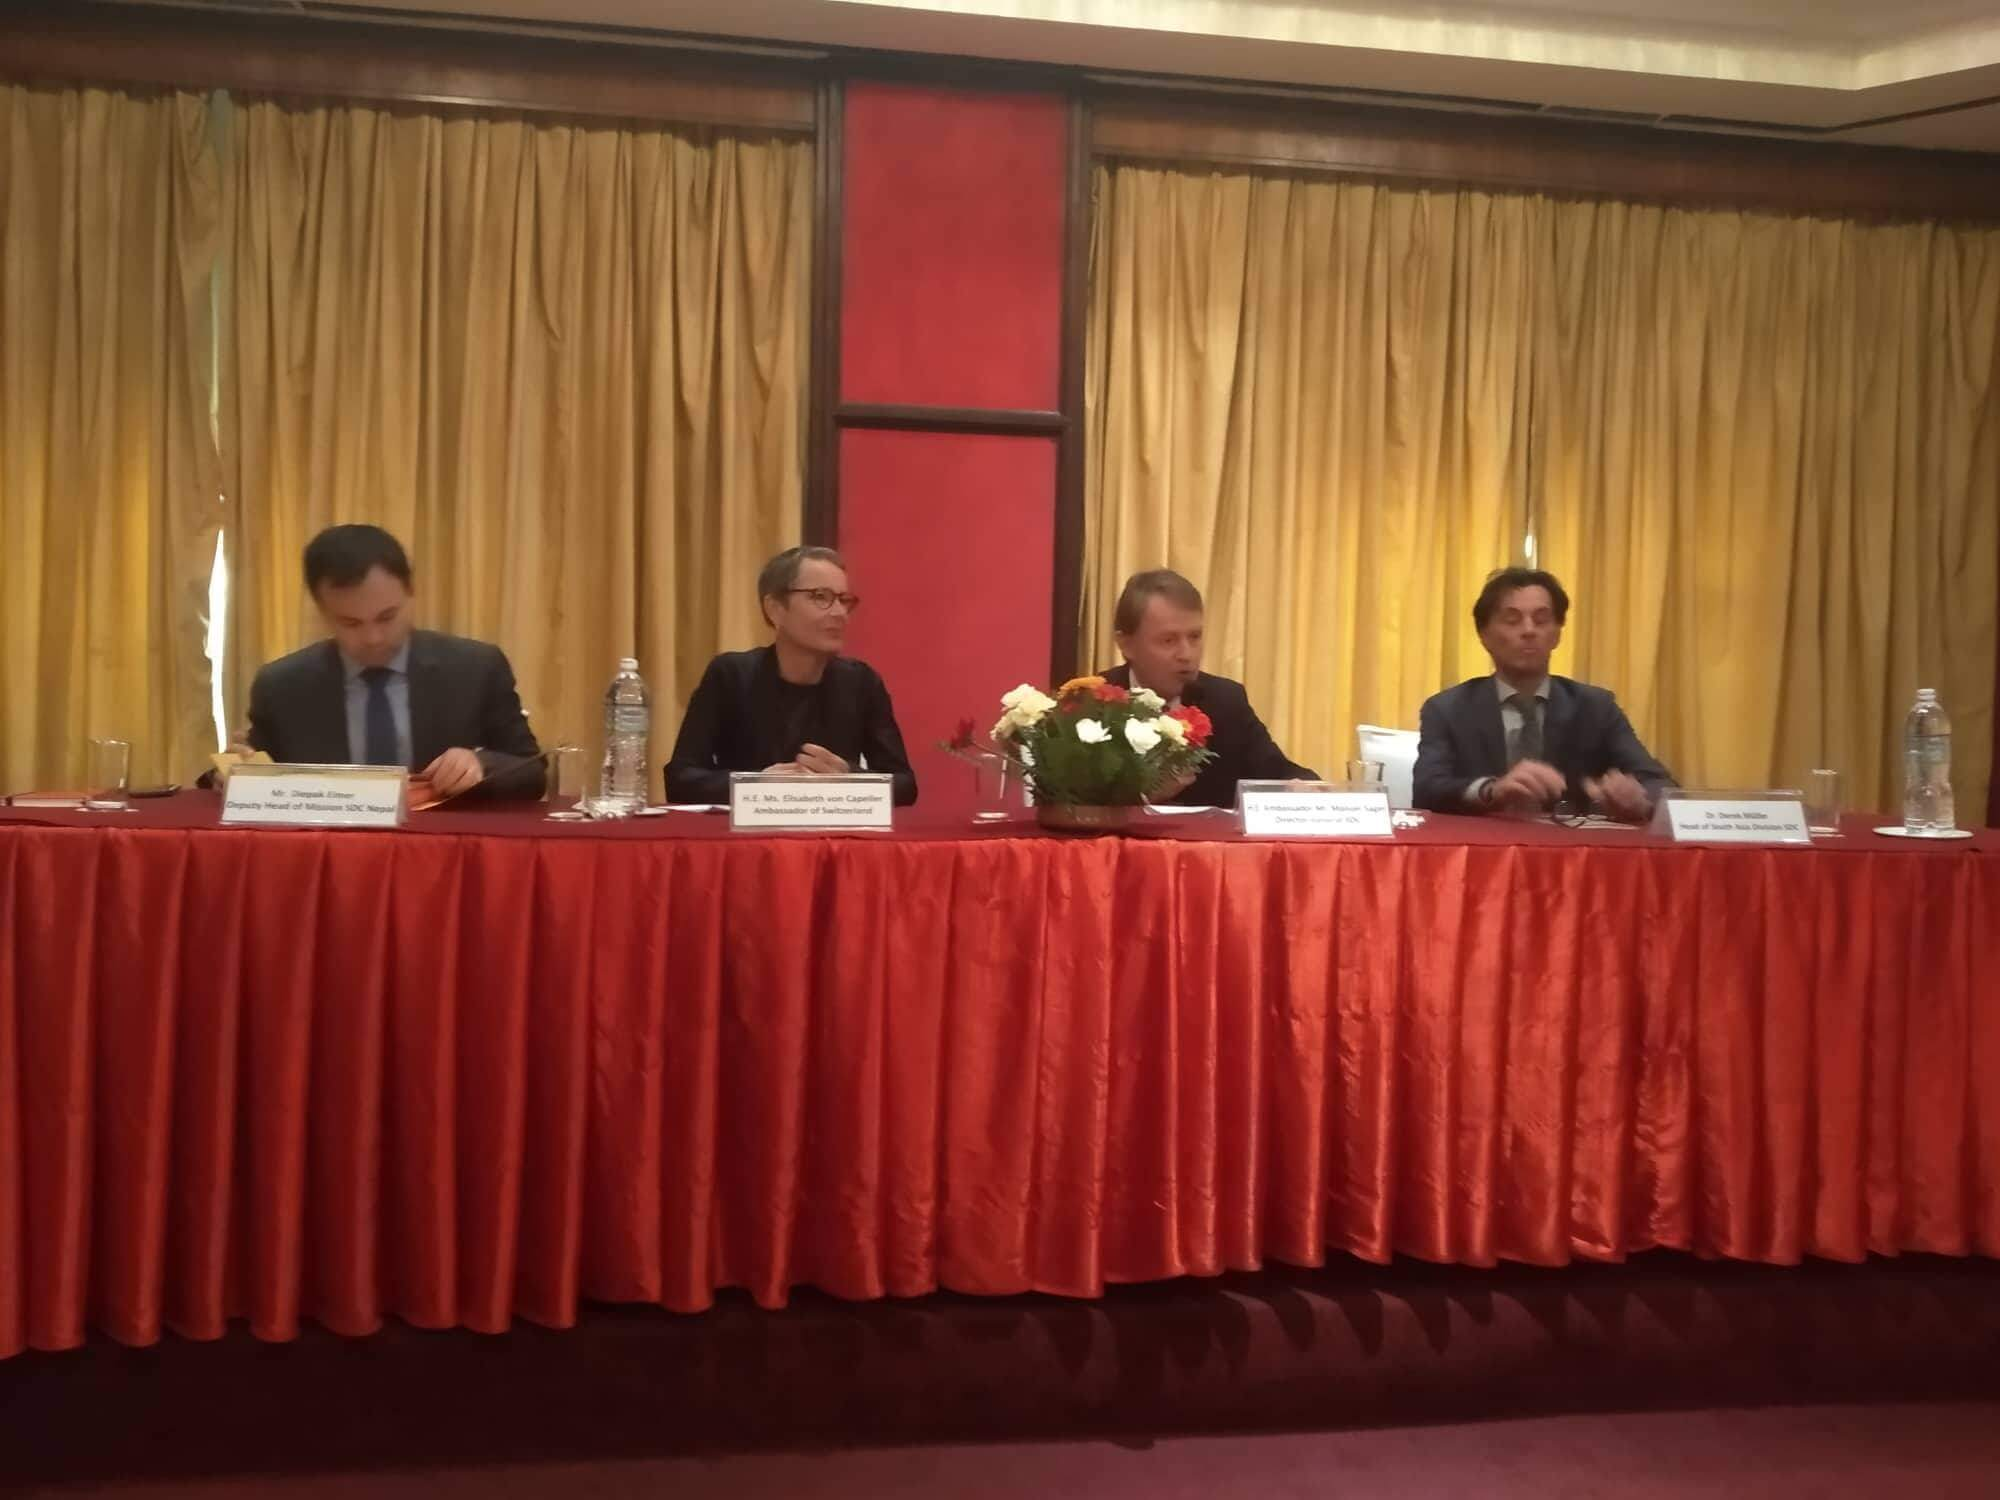 Manuel Sager, Director General of Swiss Agency for Development and Cooperation, addresses a press meet celebrating 60 years of cooperation between Switzerland and Nepal, at Himalayan Hotel, Lalitpur on Friday.